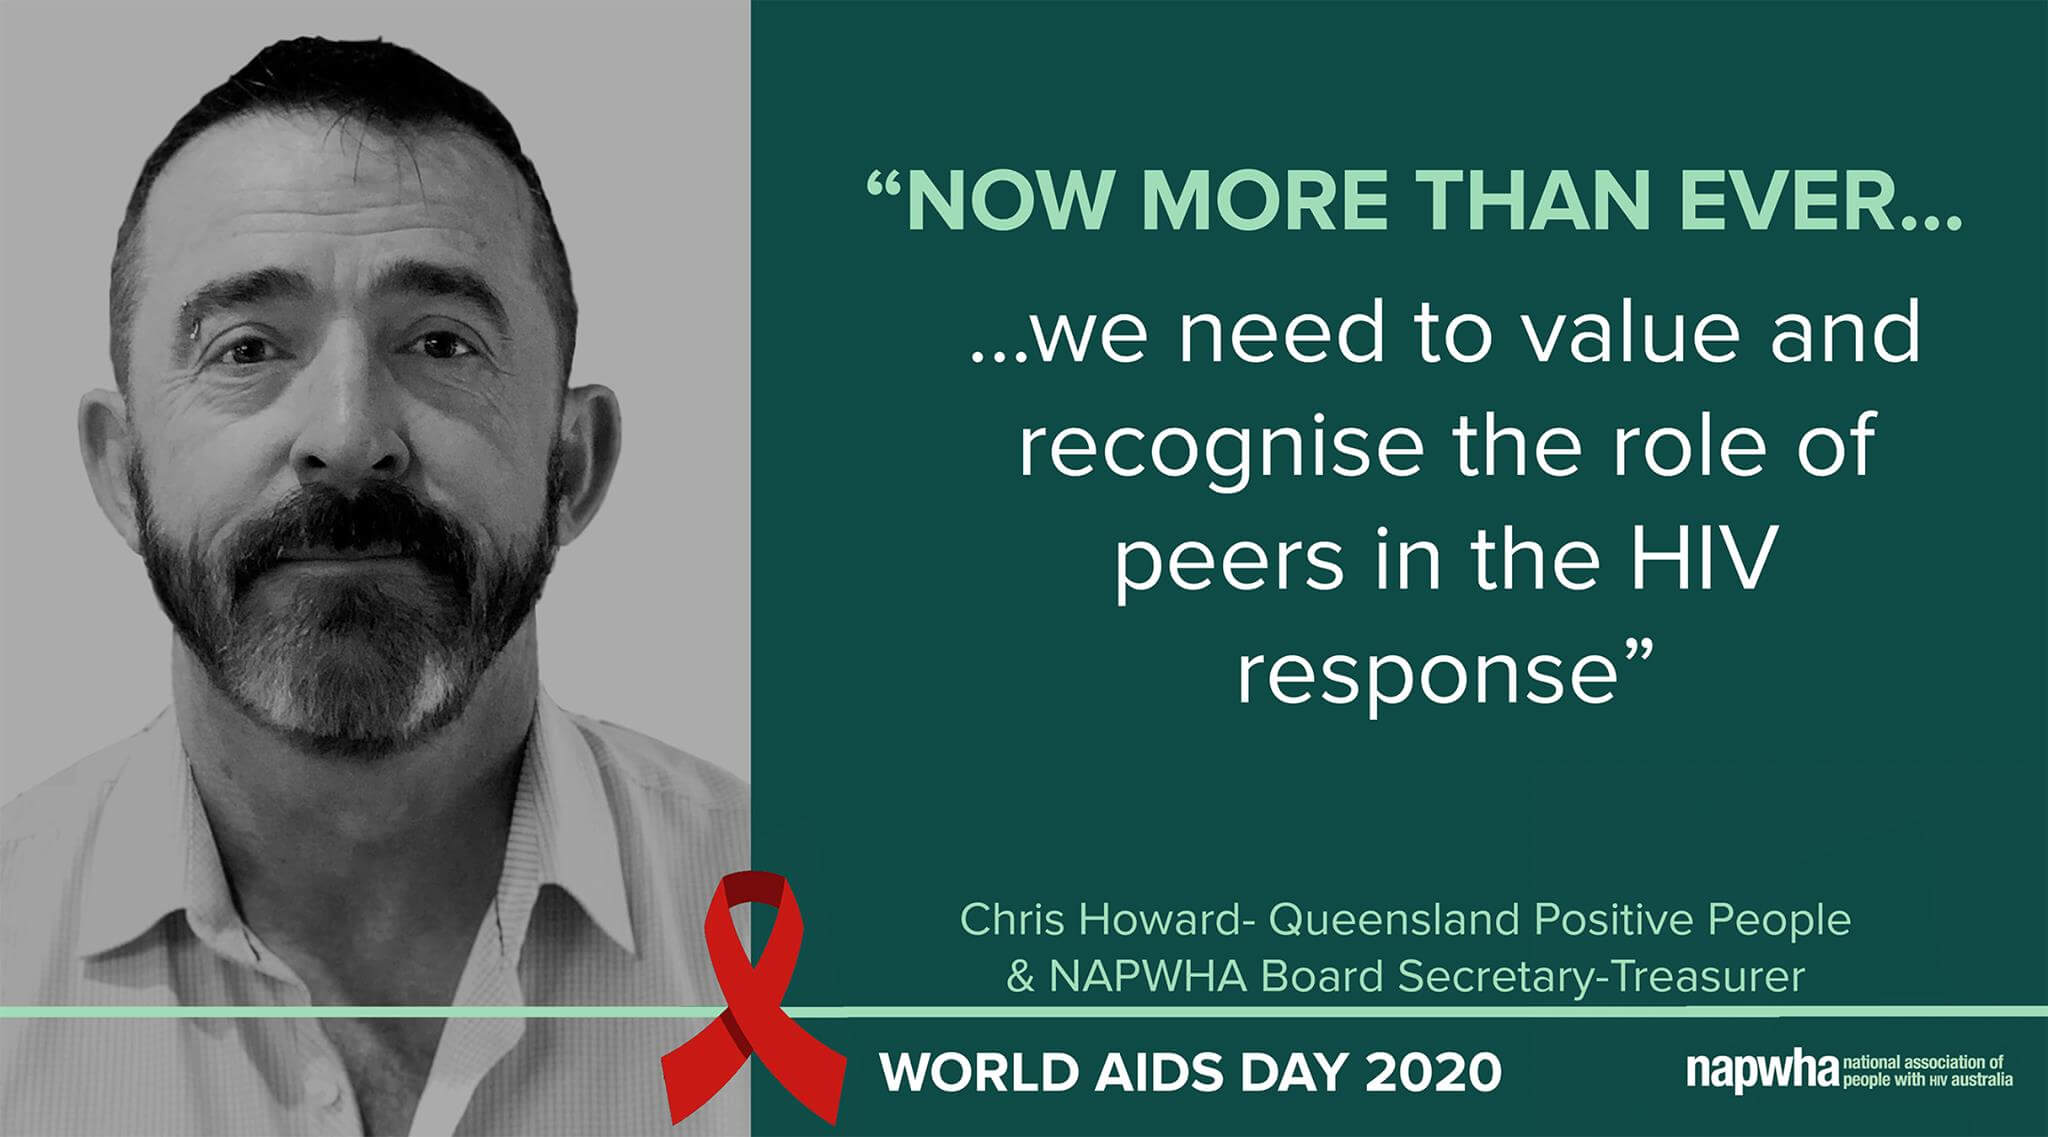 Chris Howard of Queensland Positive People and NAPWHA Board Secretary-Treasurer provides a World AIDS Day 2020 message